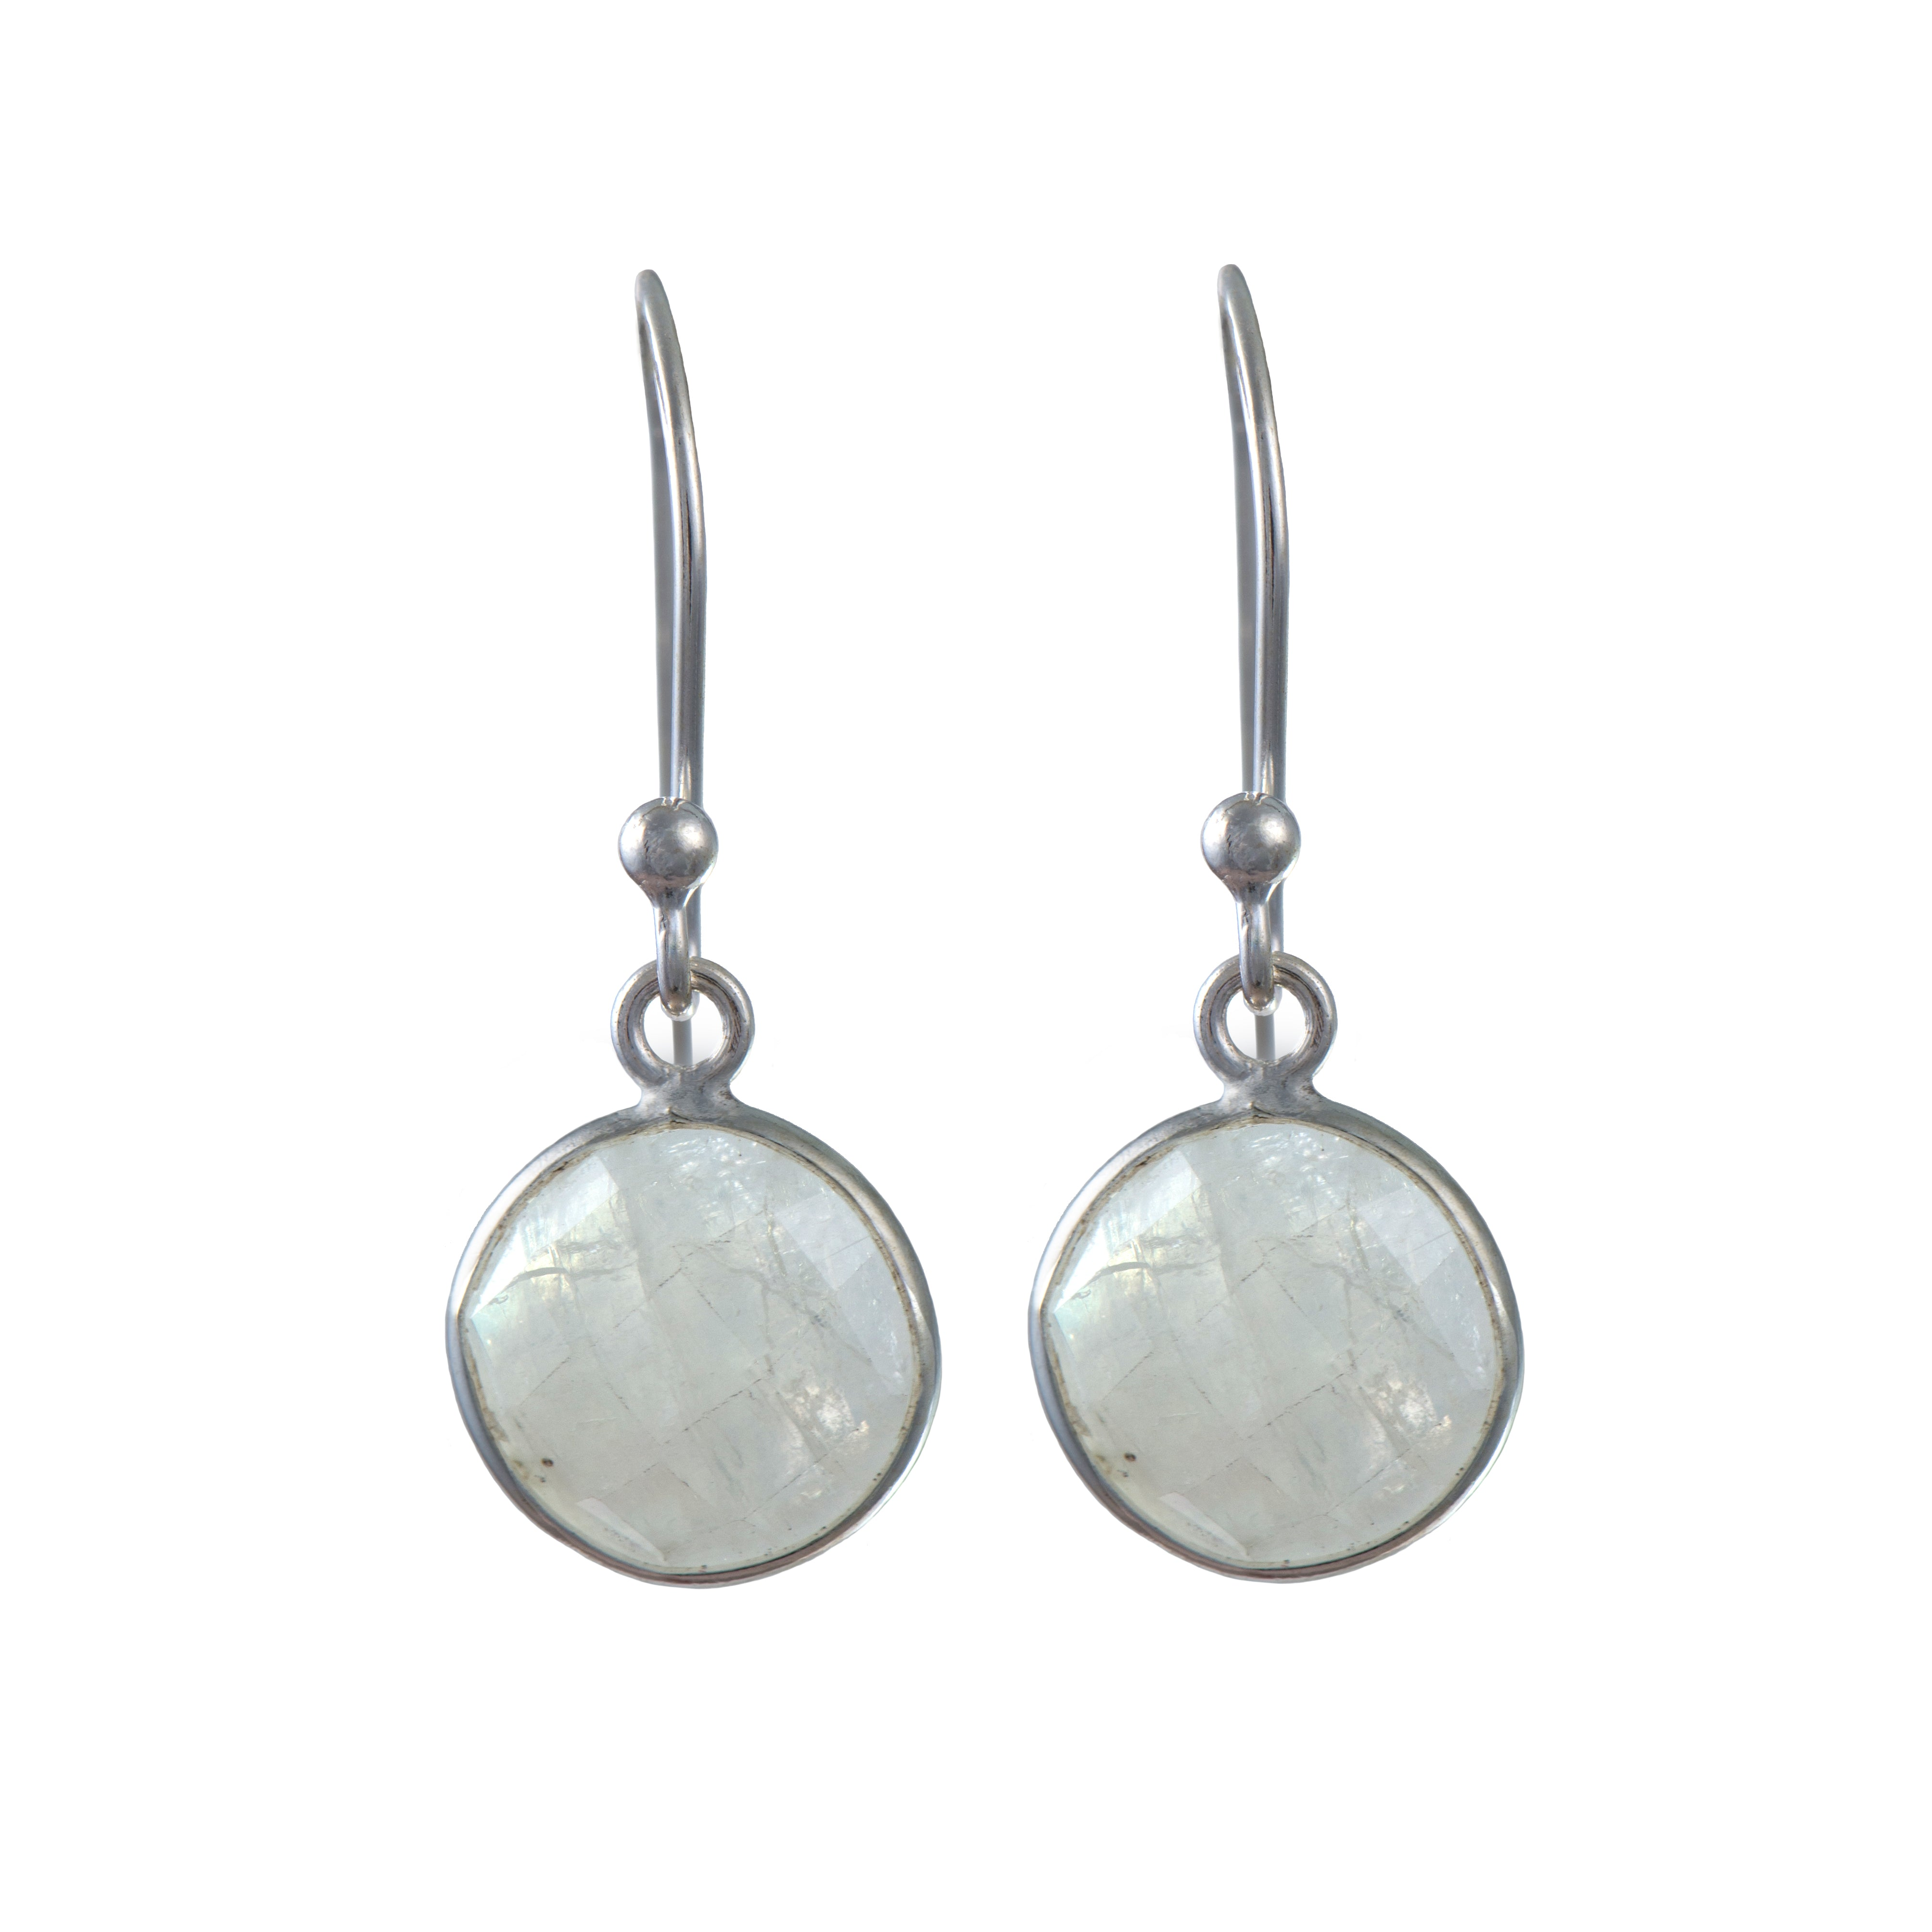 Moonstone Sterling Silver Earrings with a Round Faceted Gemstone Drop